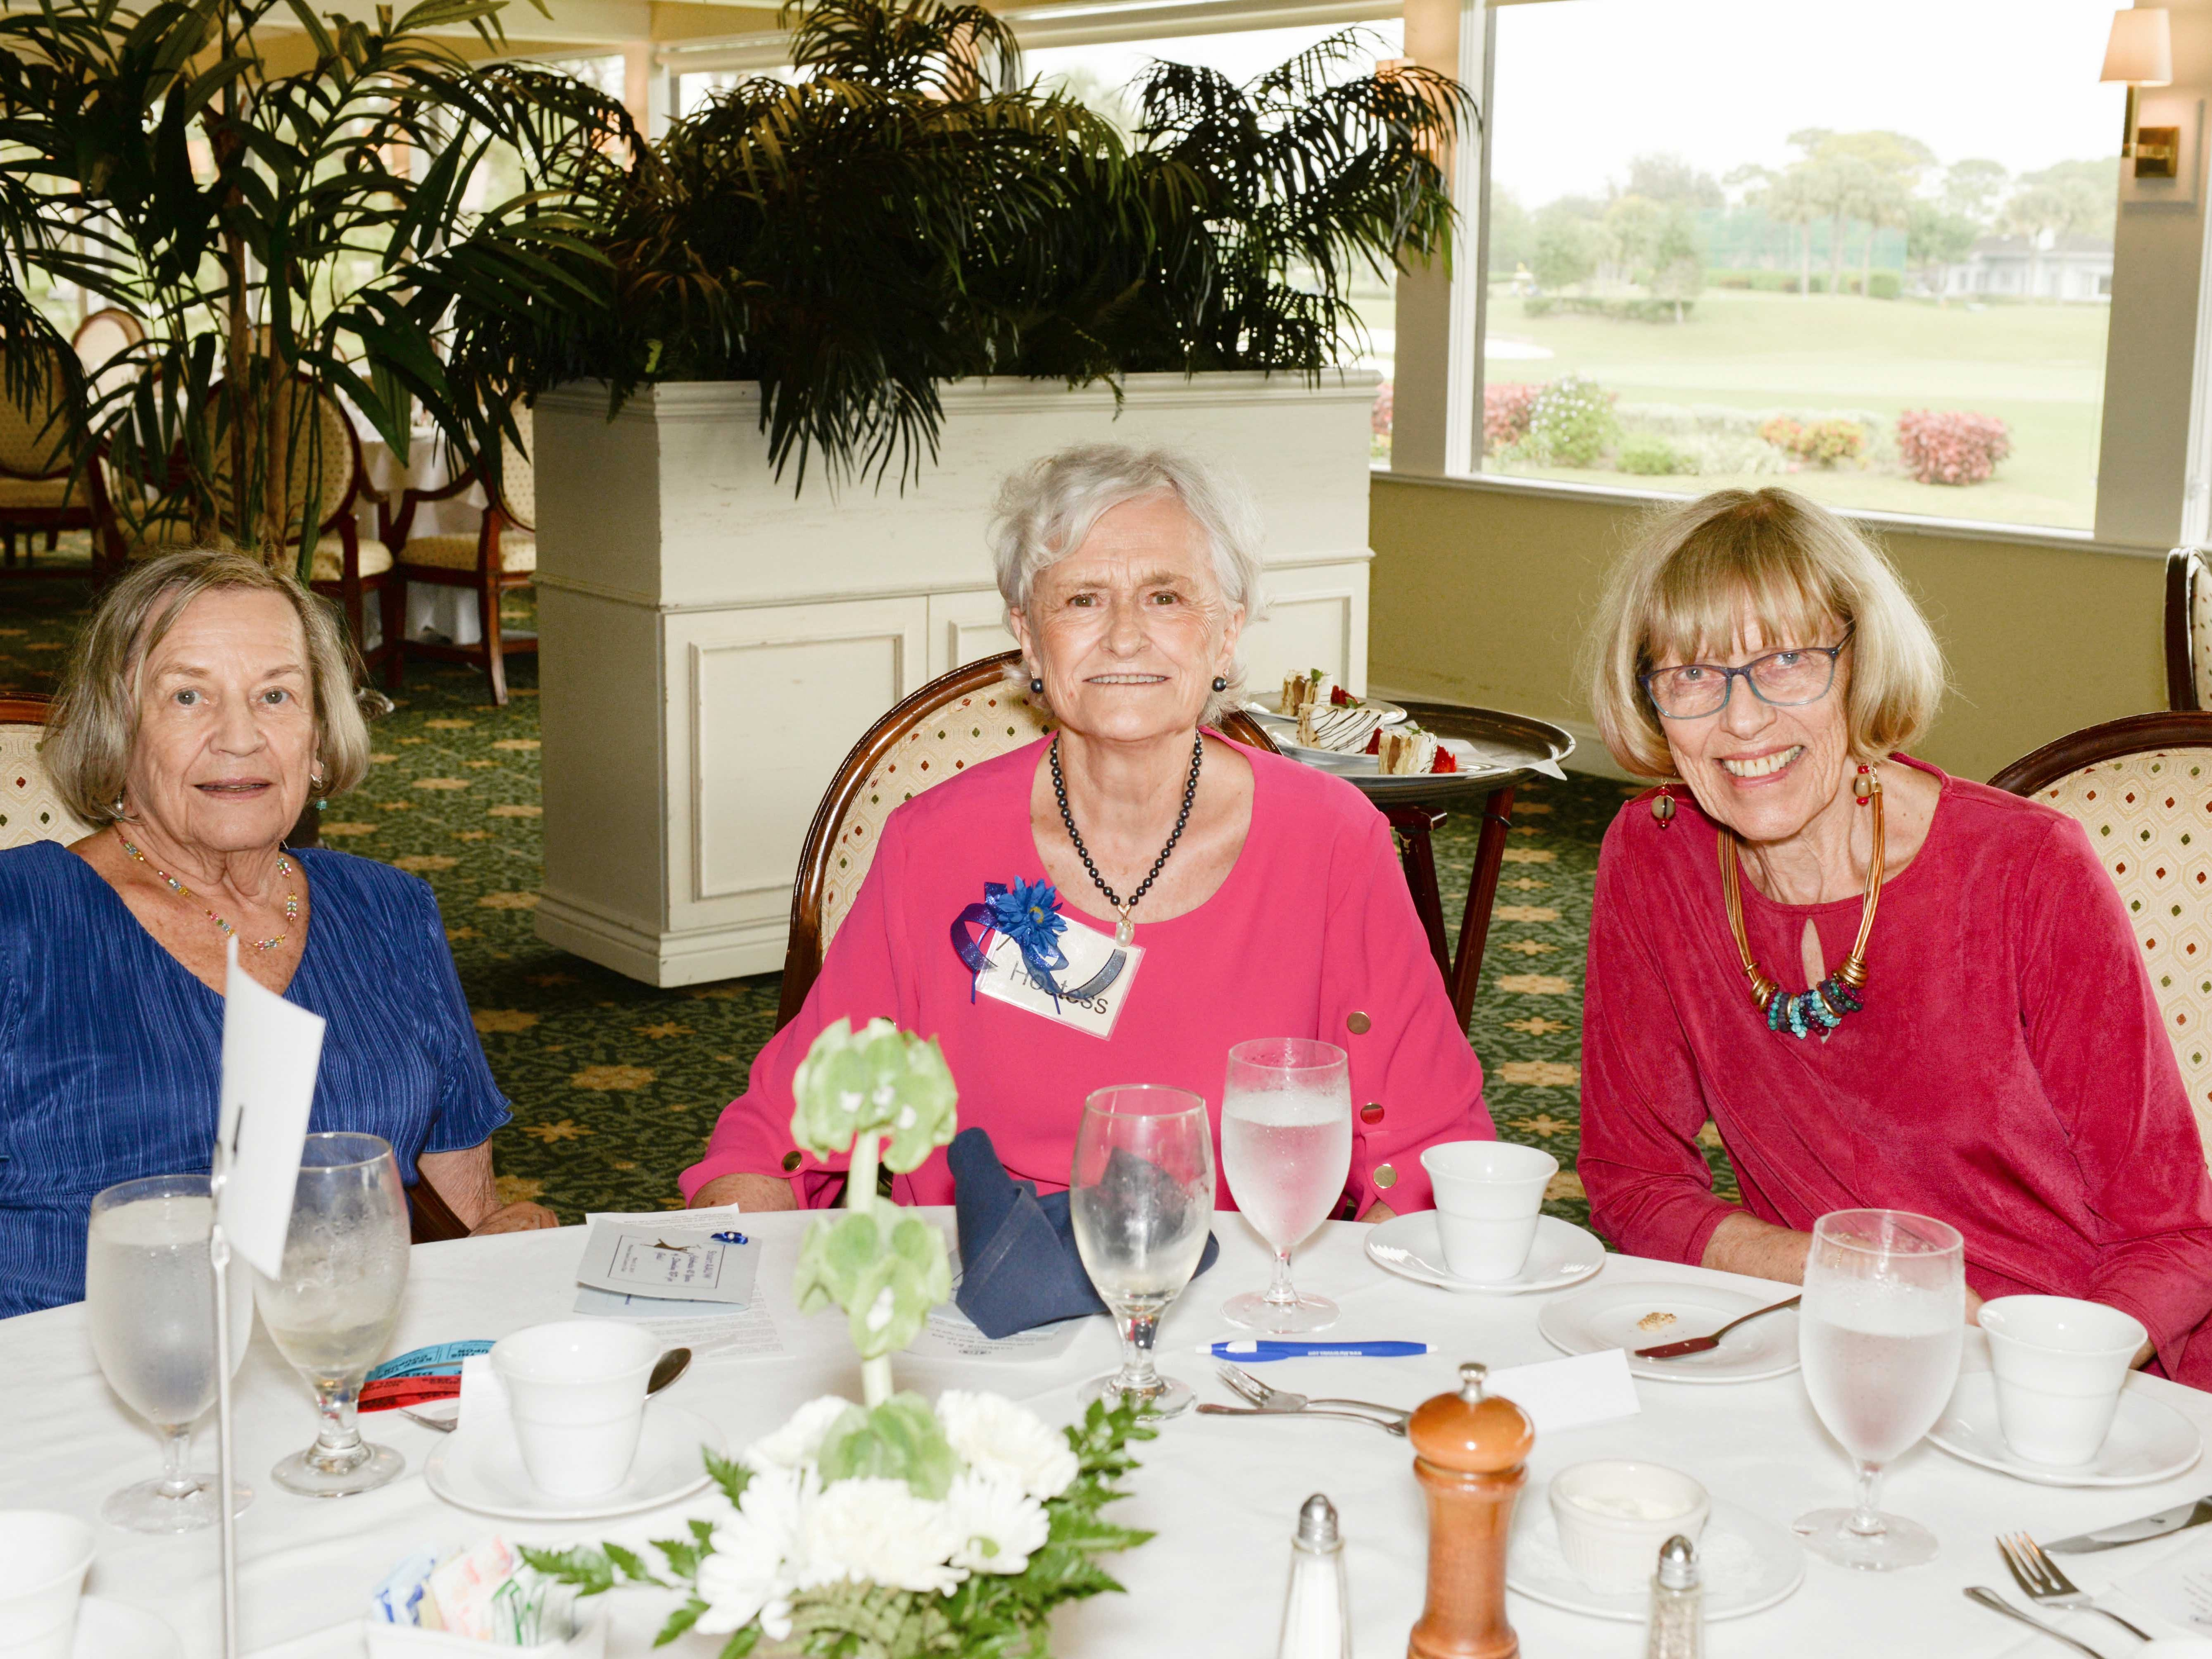 Theresa Boucher, left, Ruthellen Riffe and Joan Bizousky at the Sapphire Anniversary luncheon of the American Association of University Women Stuart Branch.